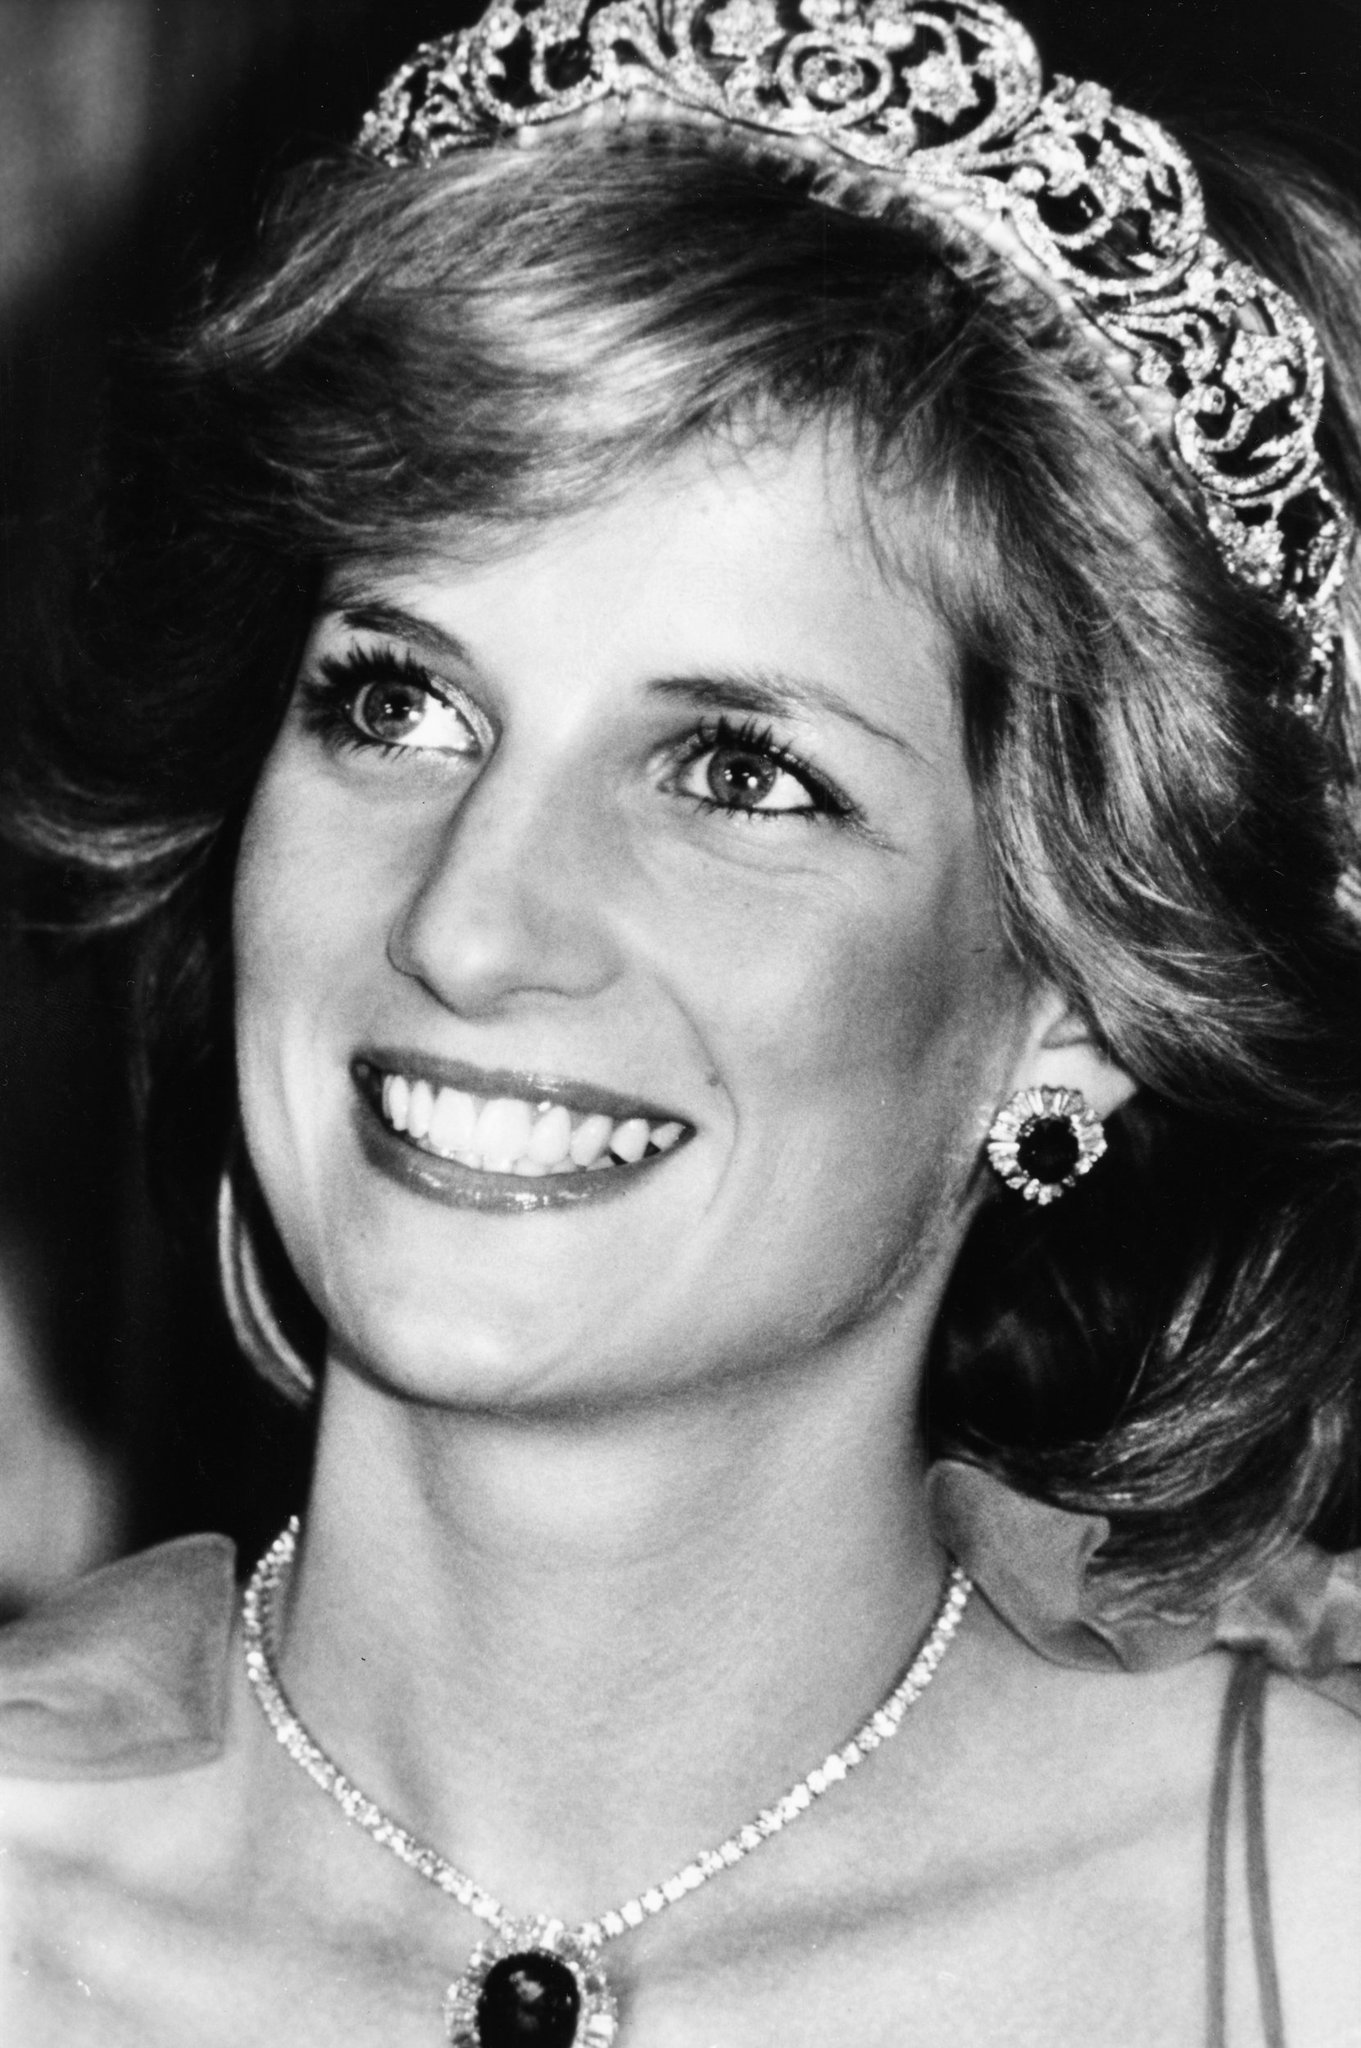 Happy 57th Birthday  Princess Diana!  ....gone but never forgotten! R.I.P